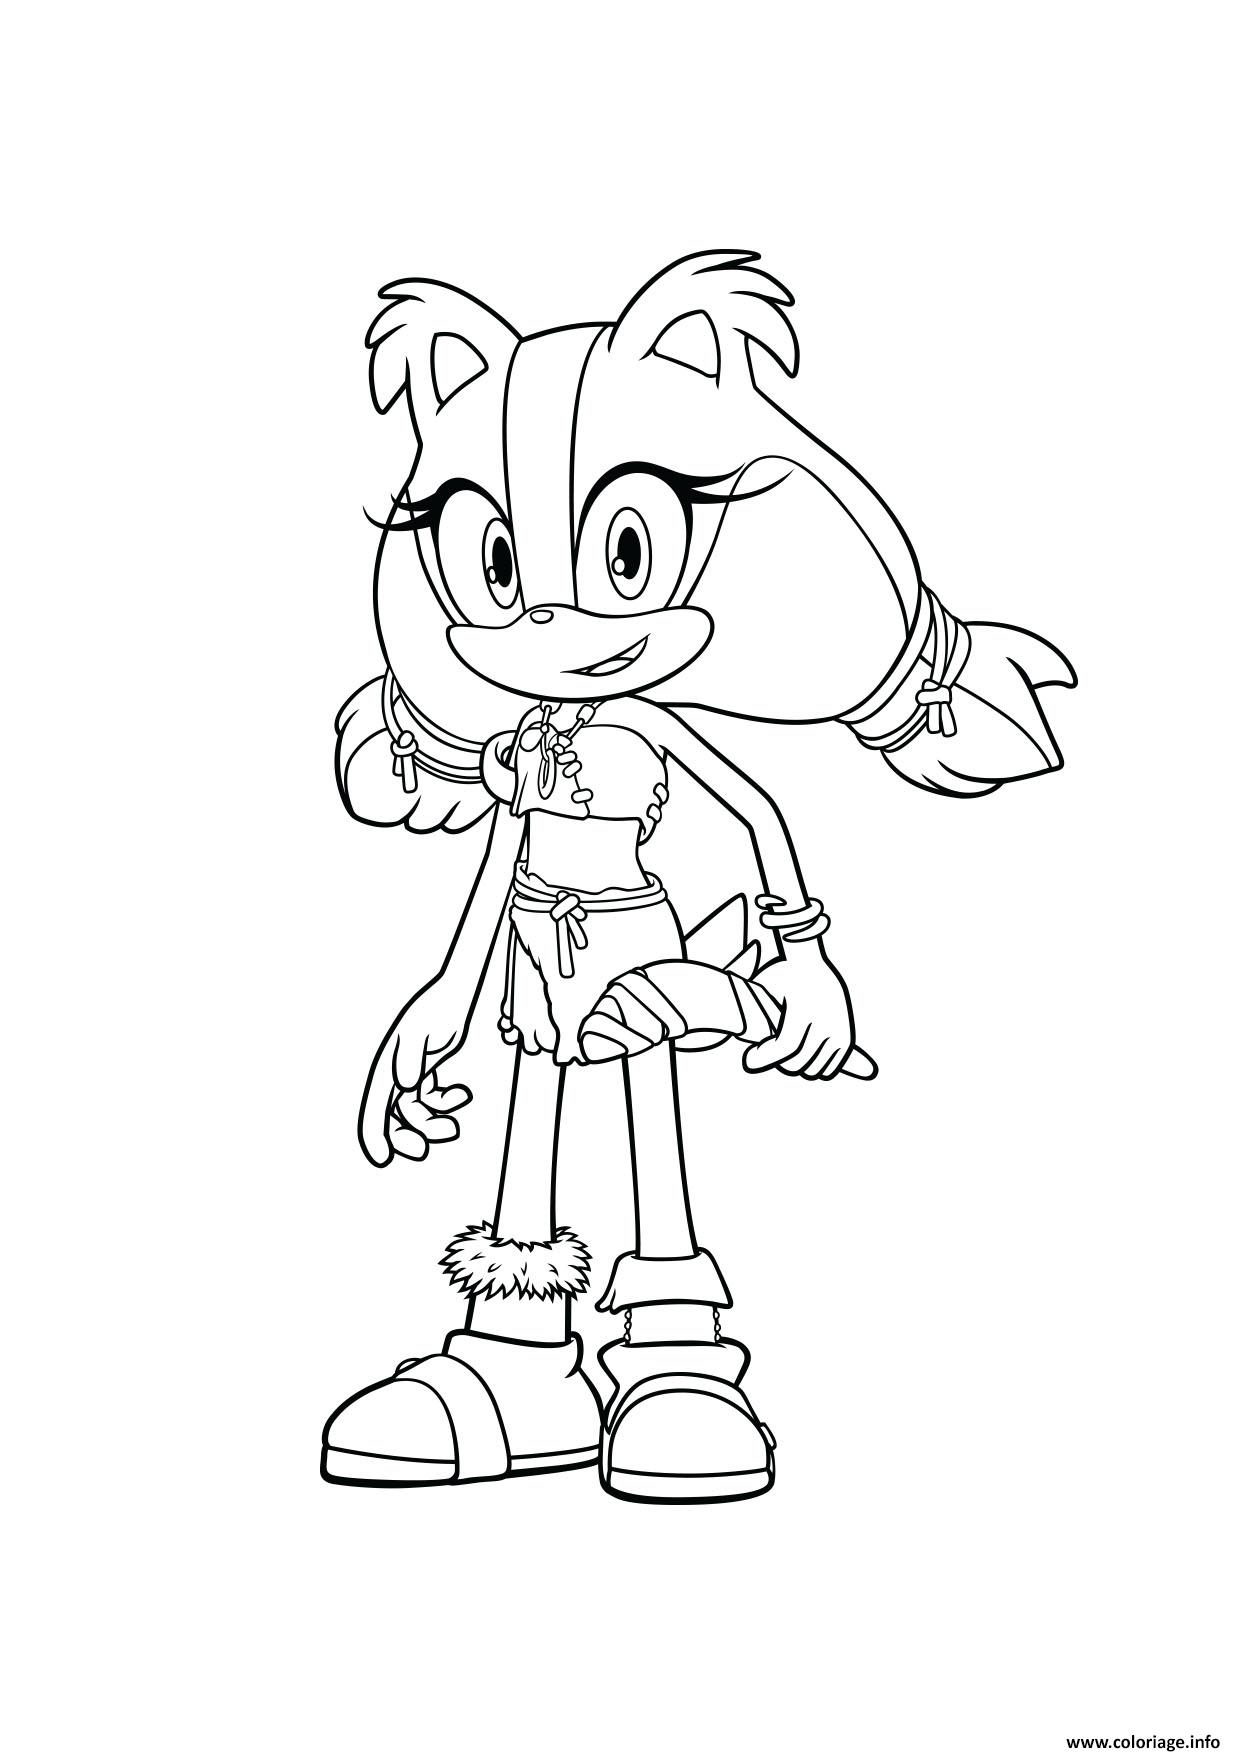 Coloriage sonic sticks - Dessin dessin ...